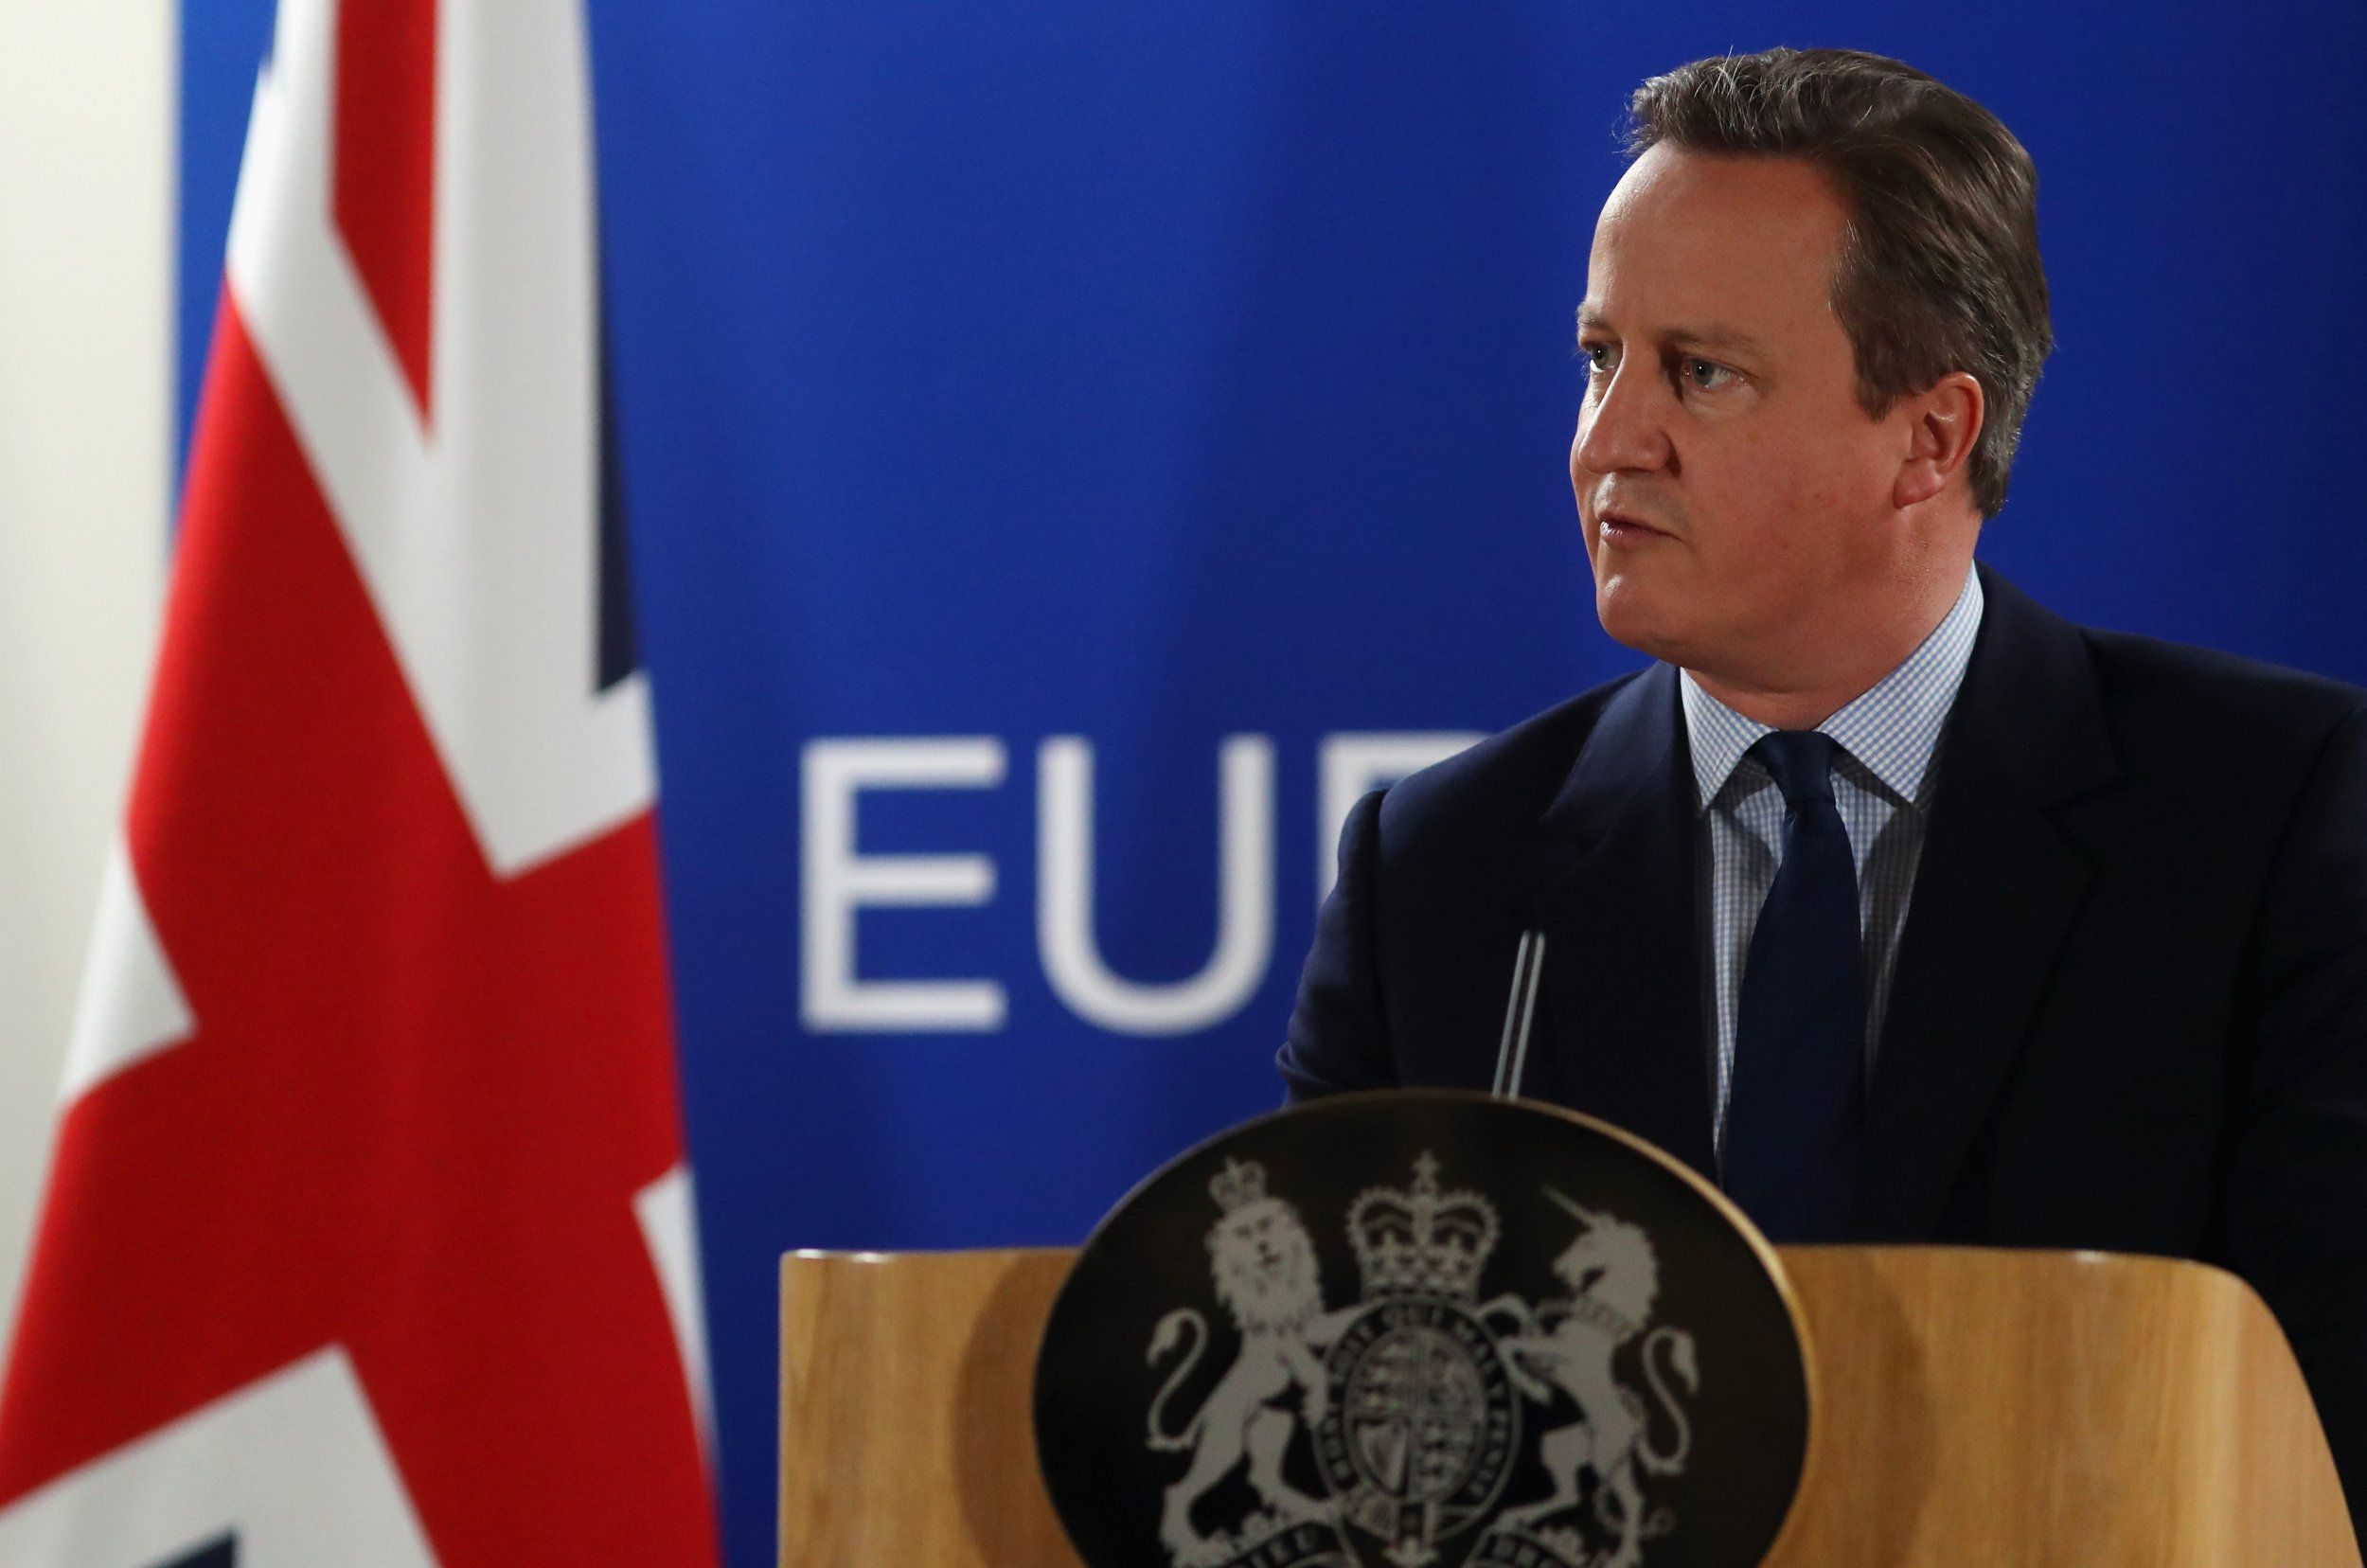 BRUSSELS, BELGIUM - JUNE 28: British Prime Minister David Cameron delivers his final press briefing before leaving his last European Council Meeting at the Council of the European Union on June 28, 2016 in Brussels, Belgium. British Prime Minister David Cameron will hold talks with other EU leaders in what will likely be his final scheduled meeting with the full European Council before he stands down as Prime Minister. The meetings come at a time of economic and political uncertainty following the referendum result last week which saw the UK vote to leave the European Union. (Photo by Dan Kitwood/Getty Images)